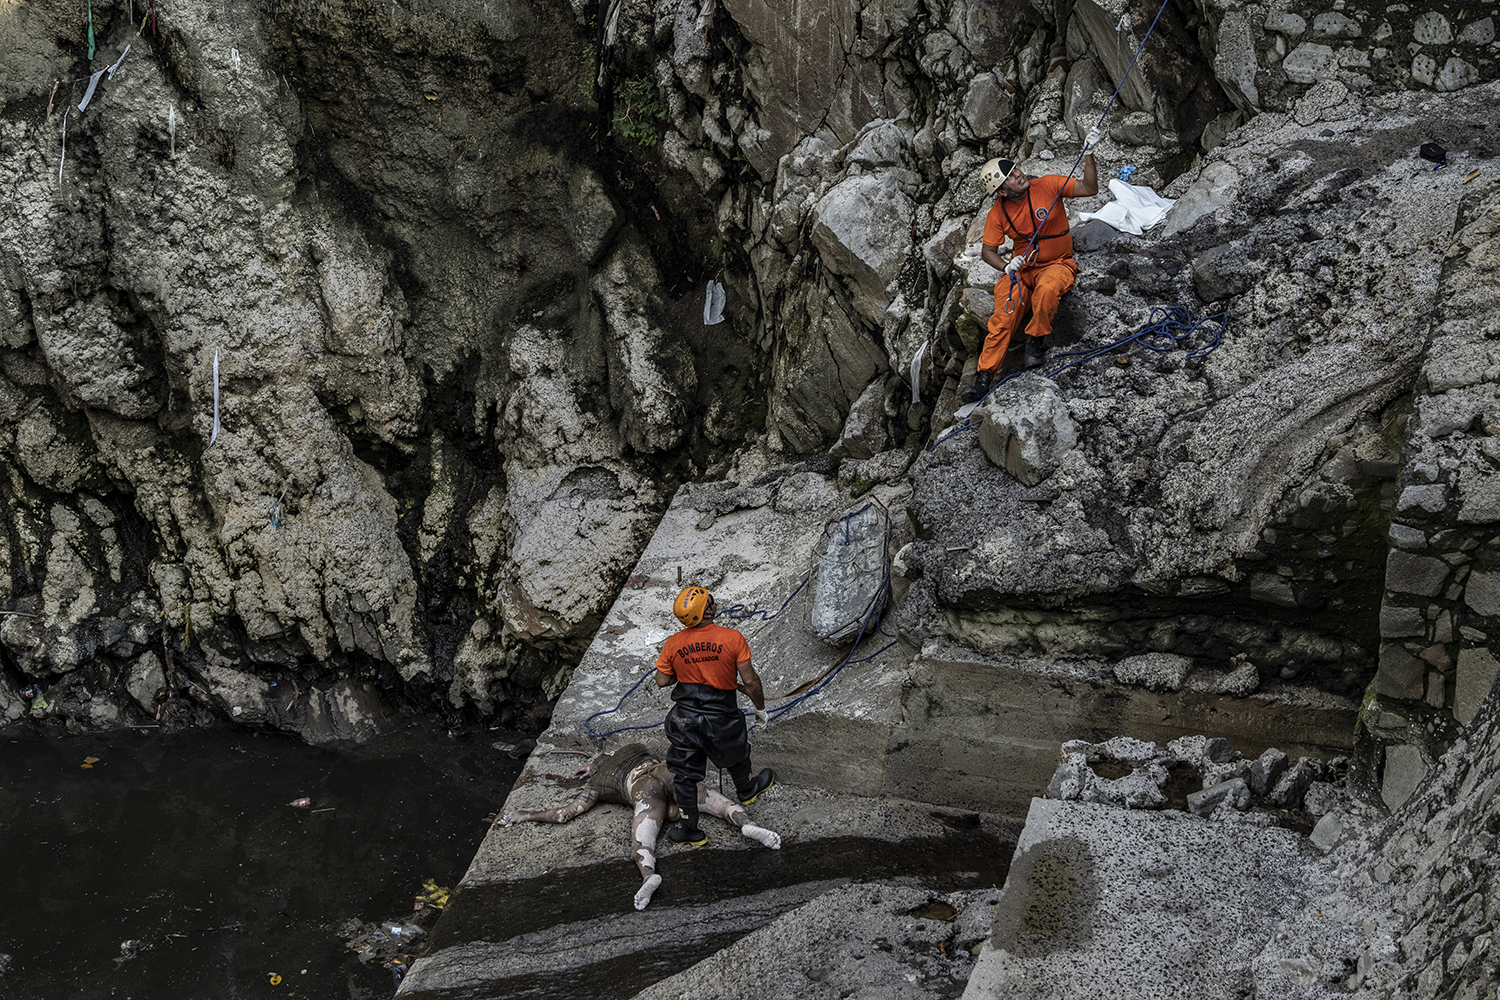 The decomposed body of Byron Stanley Henríquez Funes is pulled out of a river at the dam by Las Mulas Bridge in the municipality of Ciudad Delgado, San Salvador, by emergency personnel on Sept. 24. He had been missing for three days.